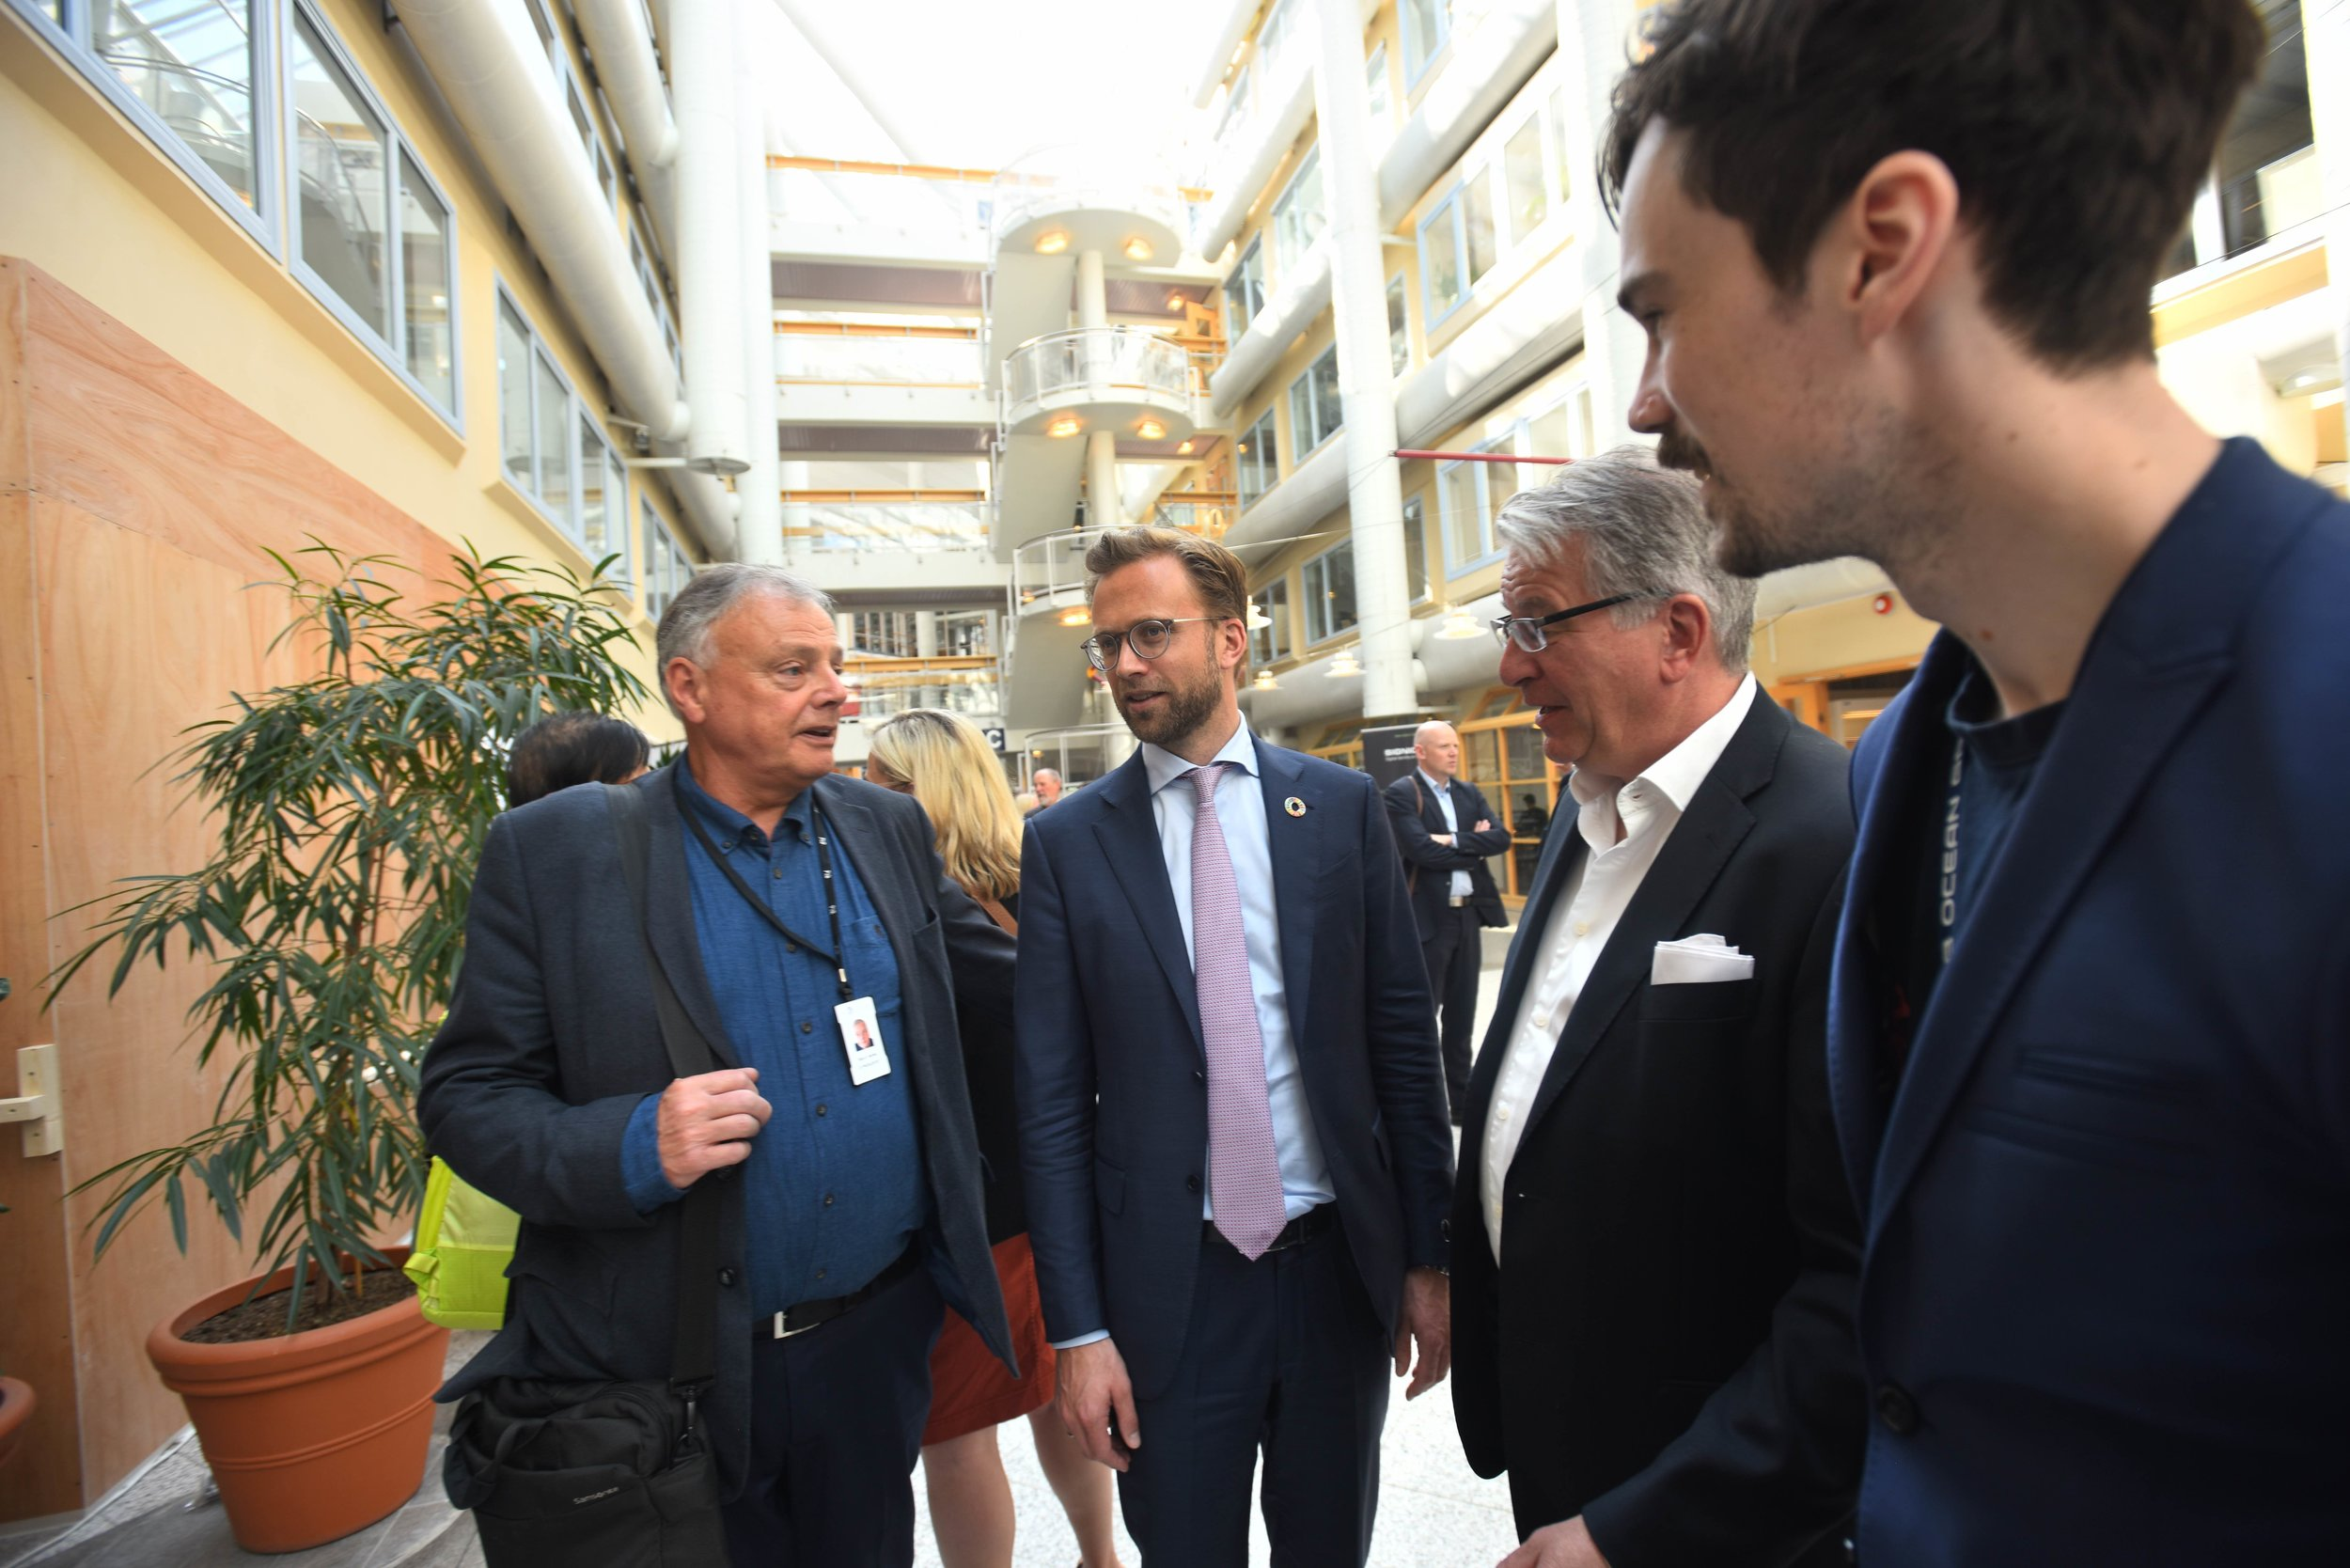 Willy (UT) and Nikolay Astrup (Minister of Digitalisation) together with Milan and Oscar Markovic (SEALAB Ocean Group)